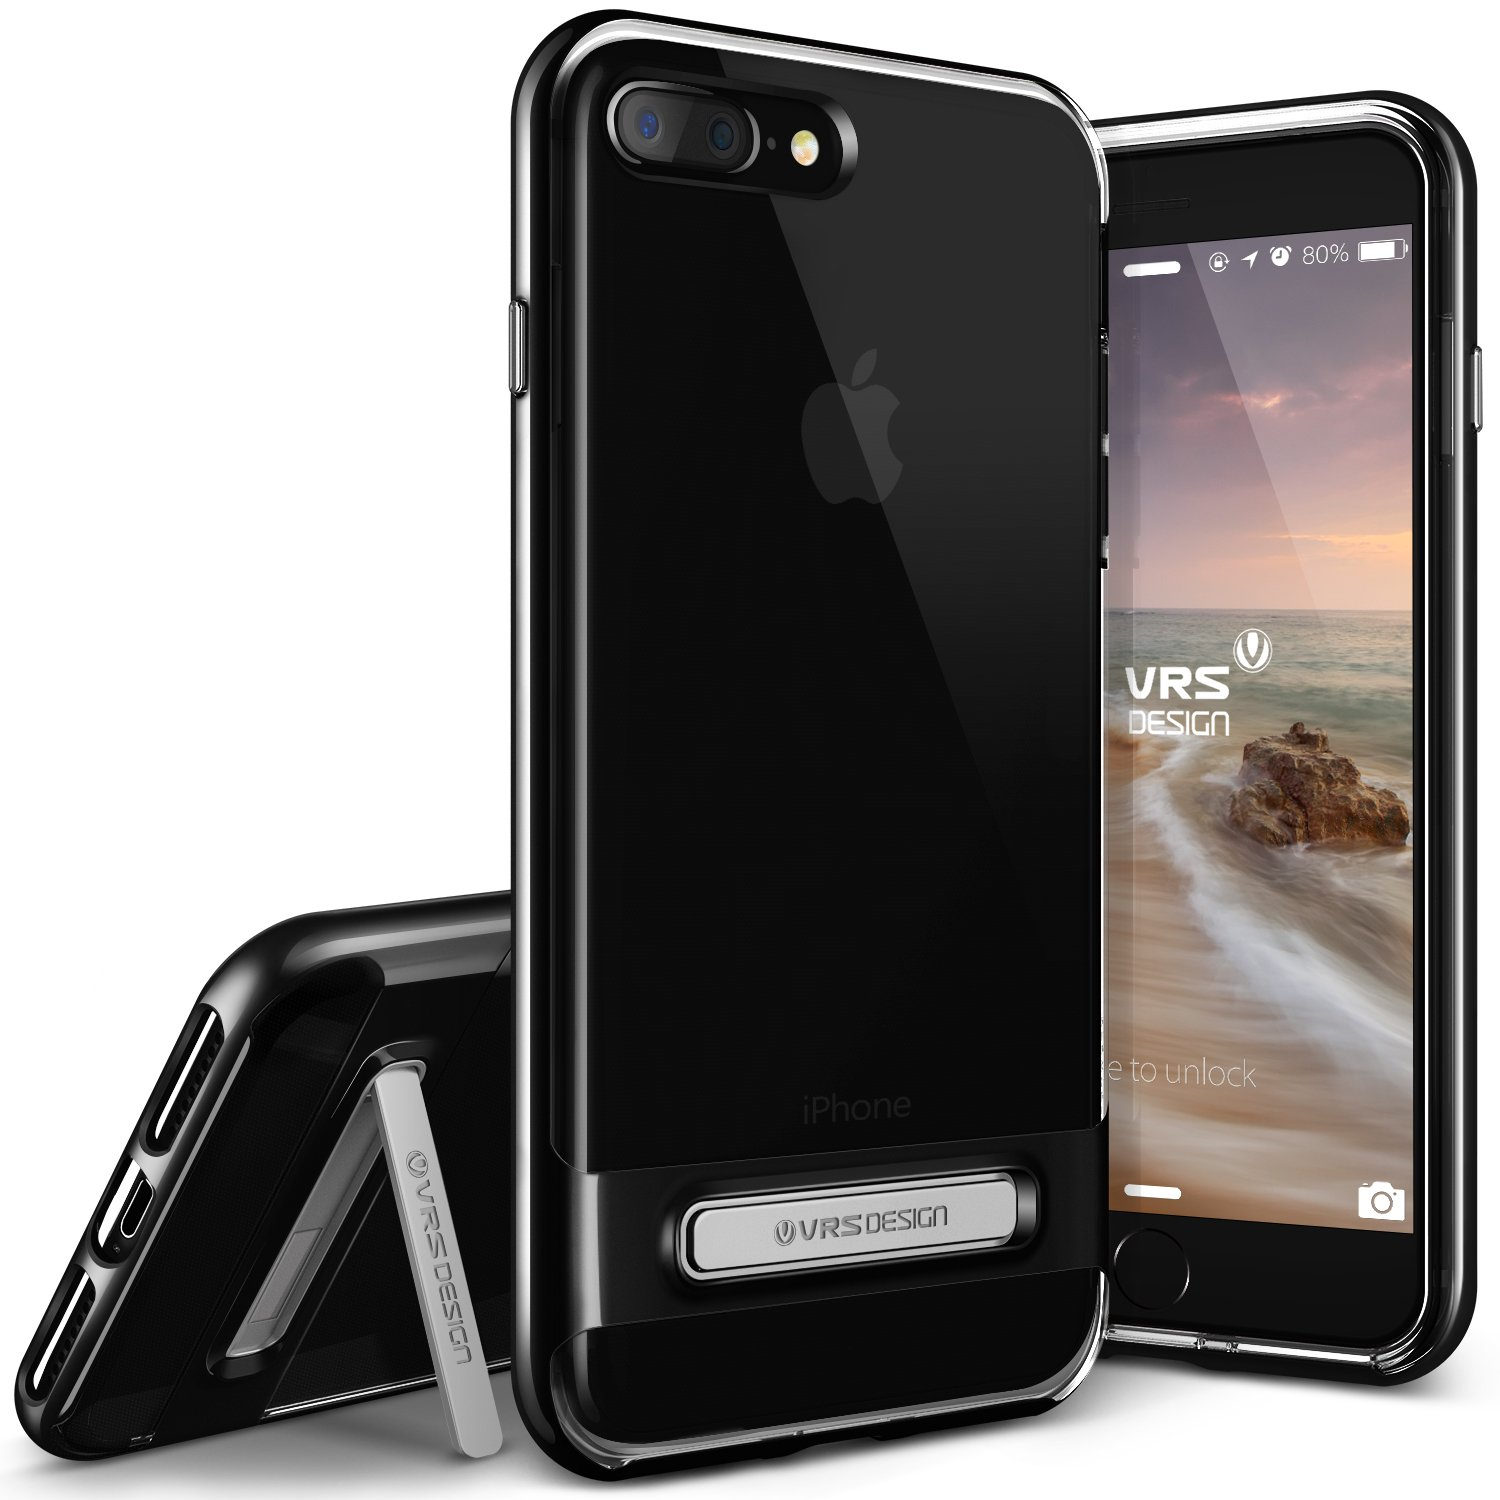 coque iphone 7 plus bumper transparent